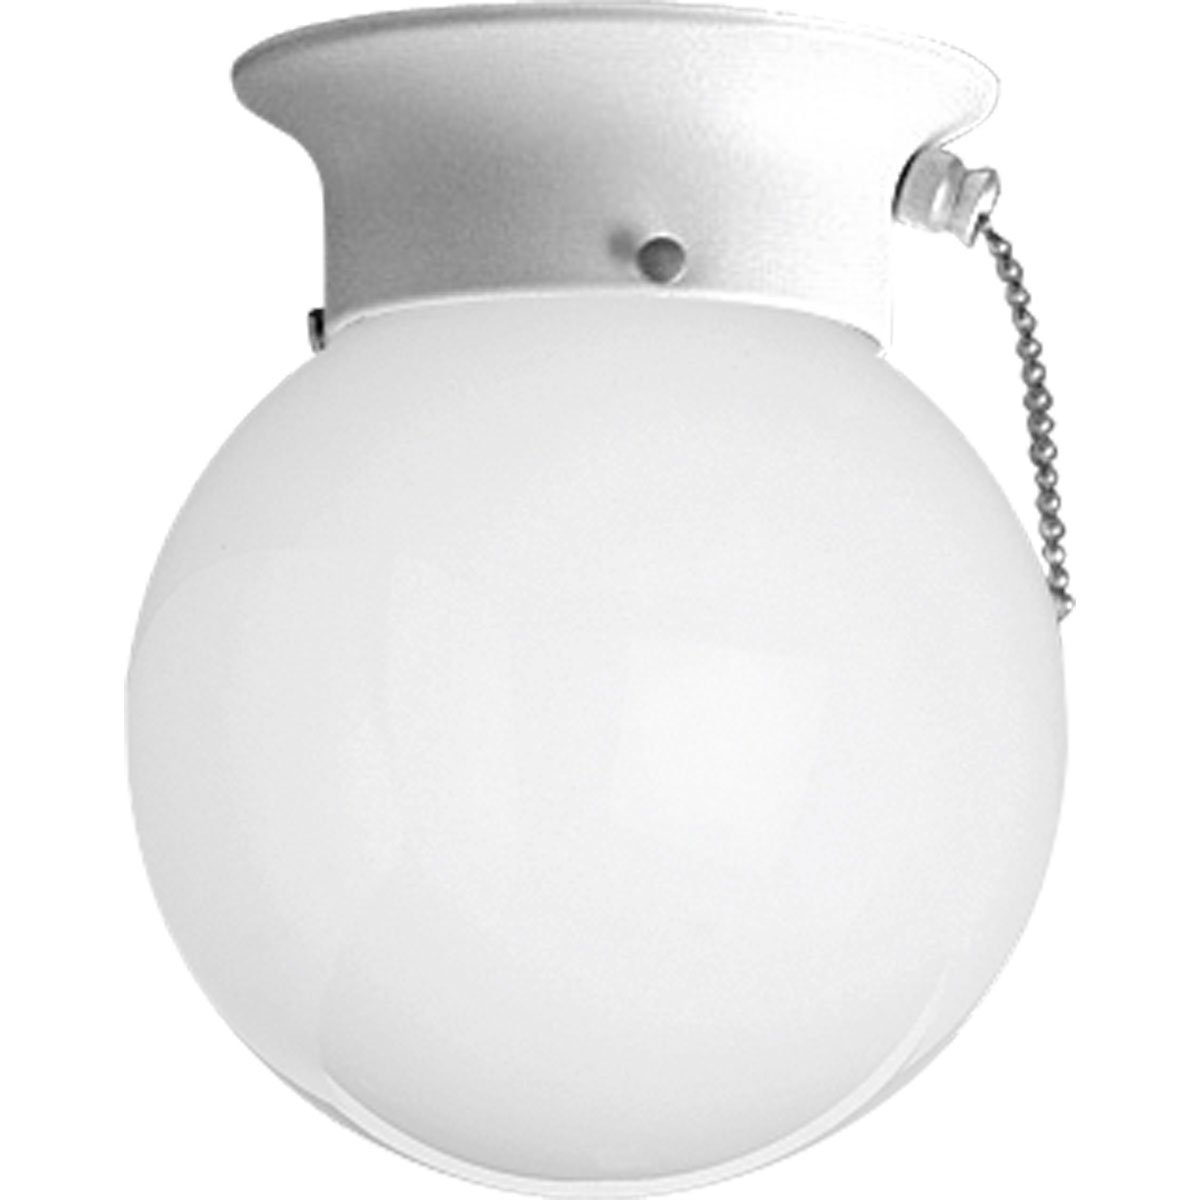 Progress lighting p3605 30sw ceiling fixture with white glass globe progress lighting p3605 30sw ceiling fixture with white glass globe and pull chain white semi flush mount ceiling light fixtures amazon arubaitofo Gallery